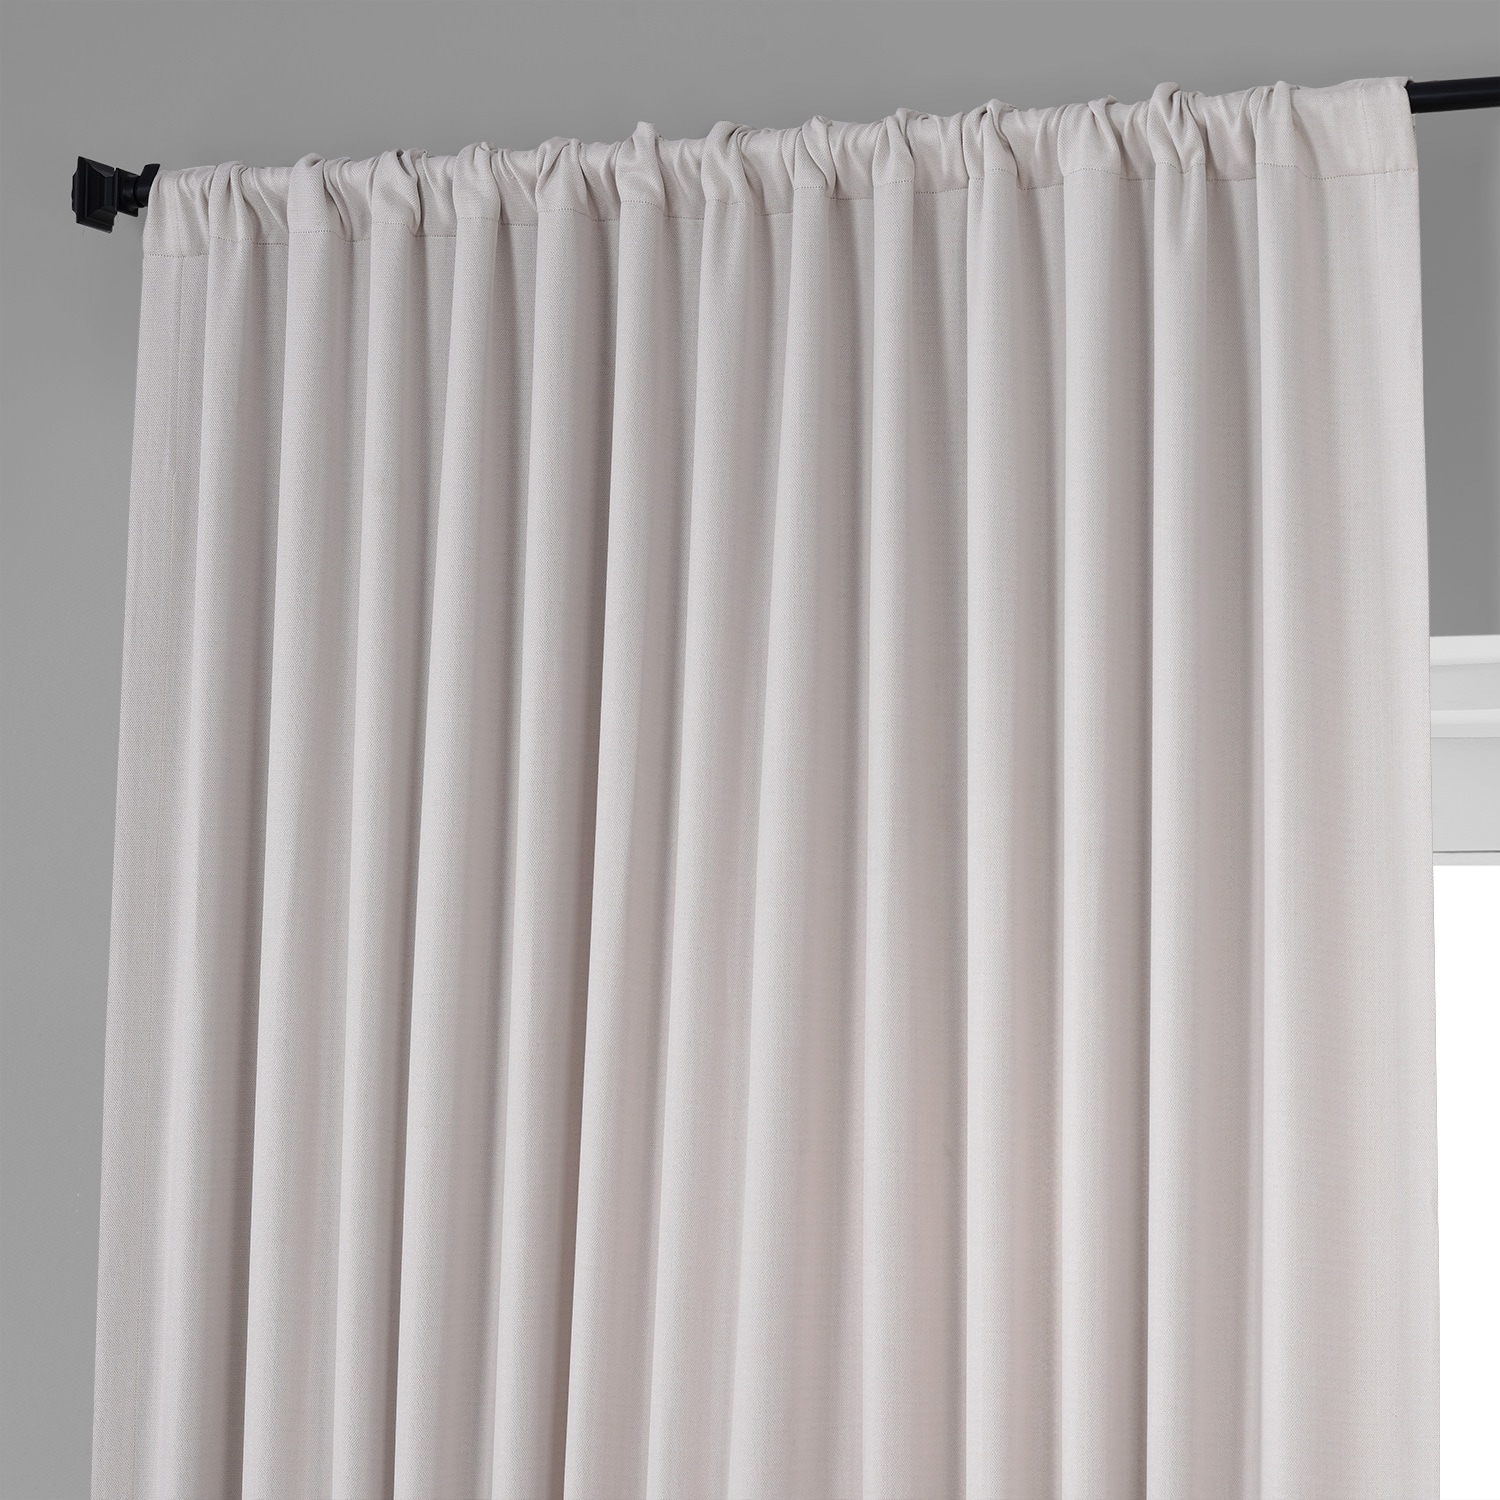 Birch Faux Linen Extra Wide Blackout Room Darkening Curtain